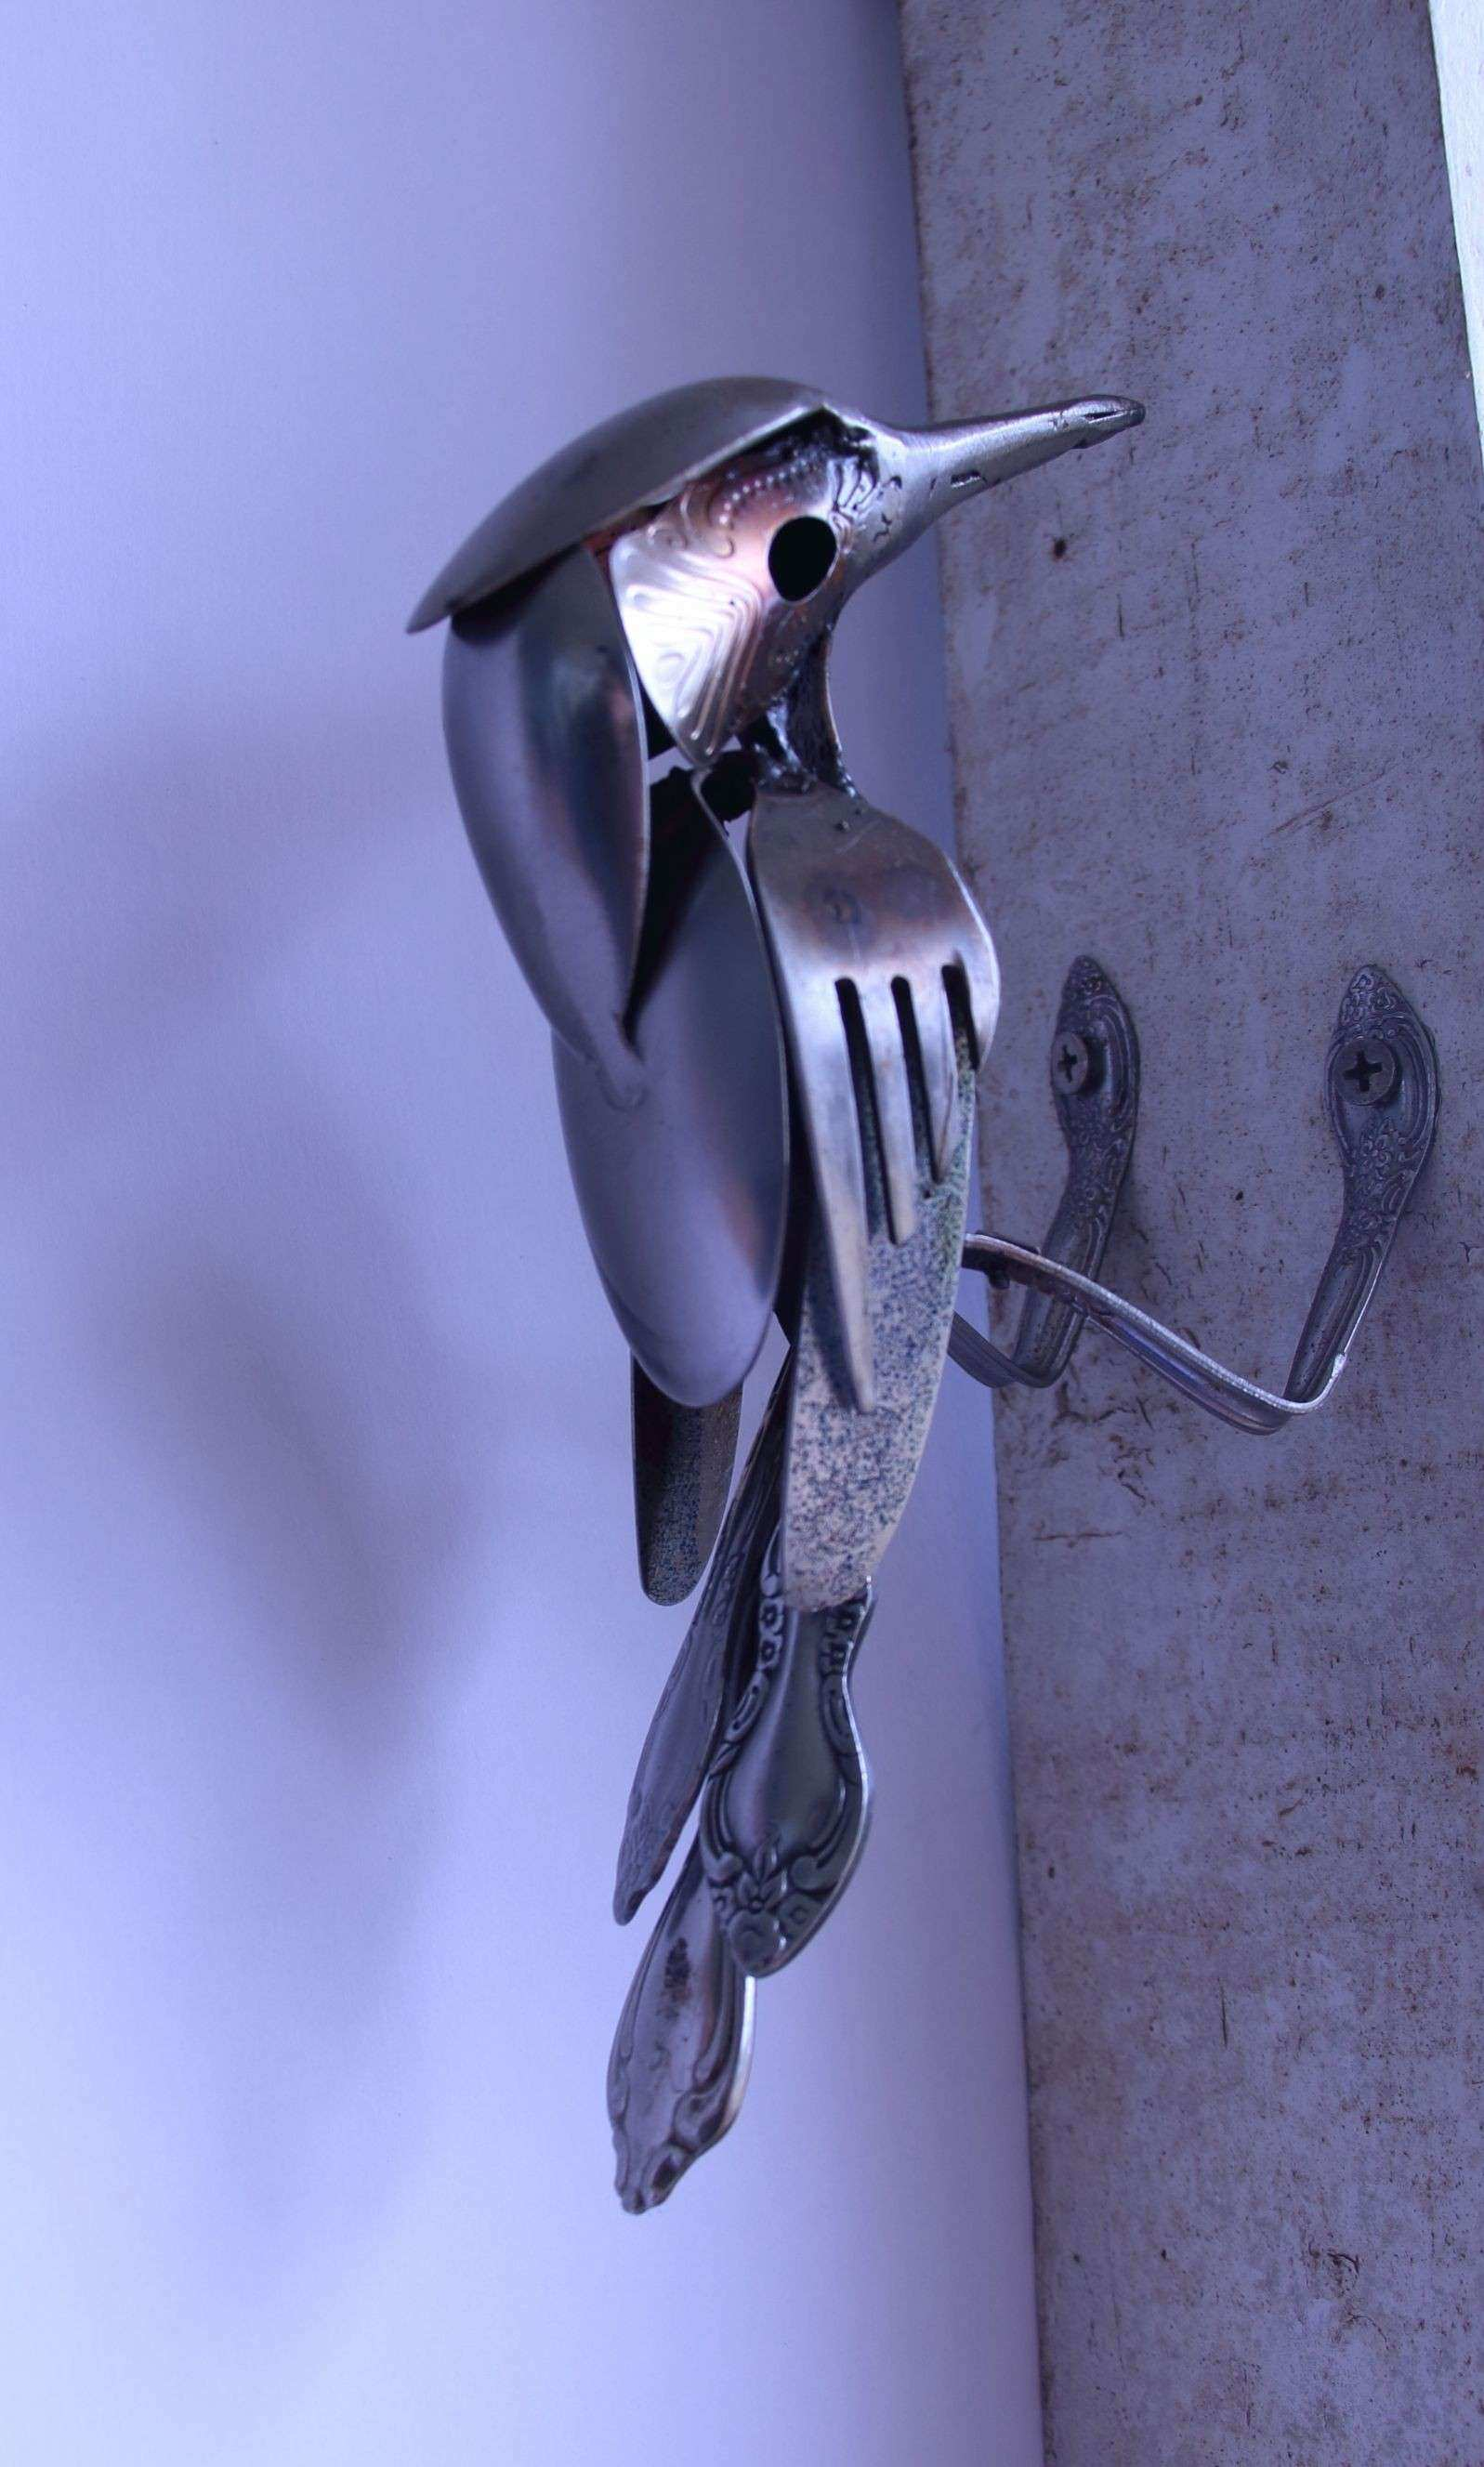 Stainless Steel Bird Created by J R Hamm This art